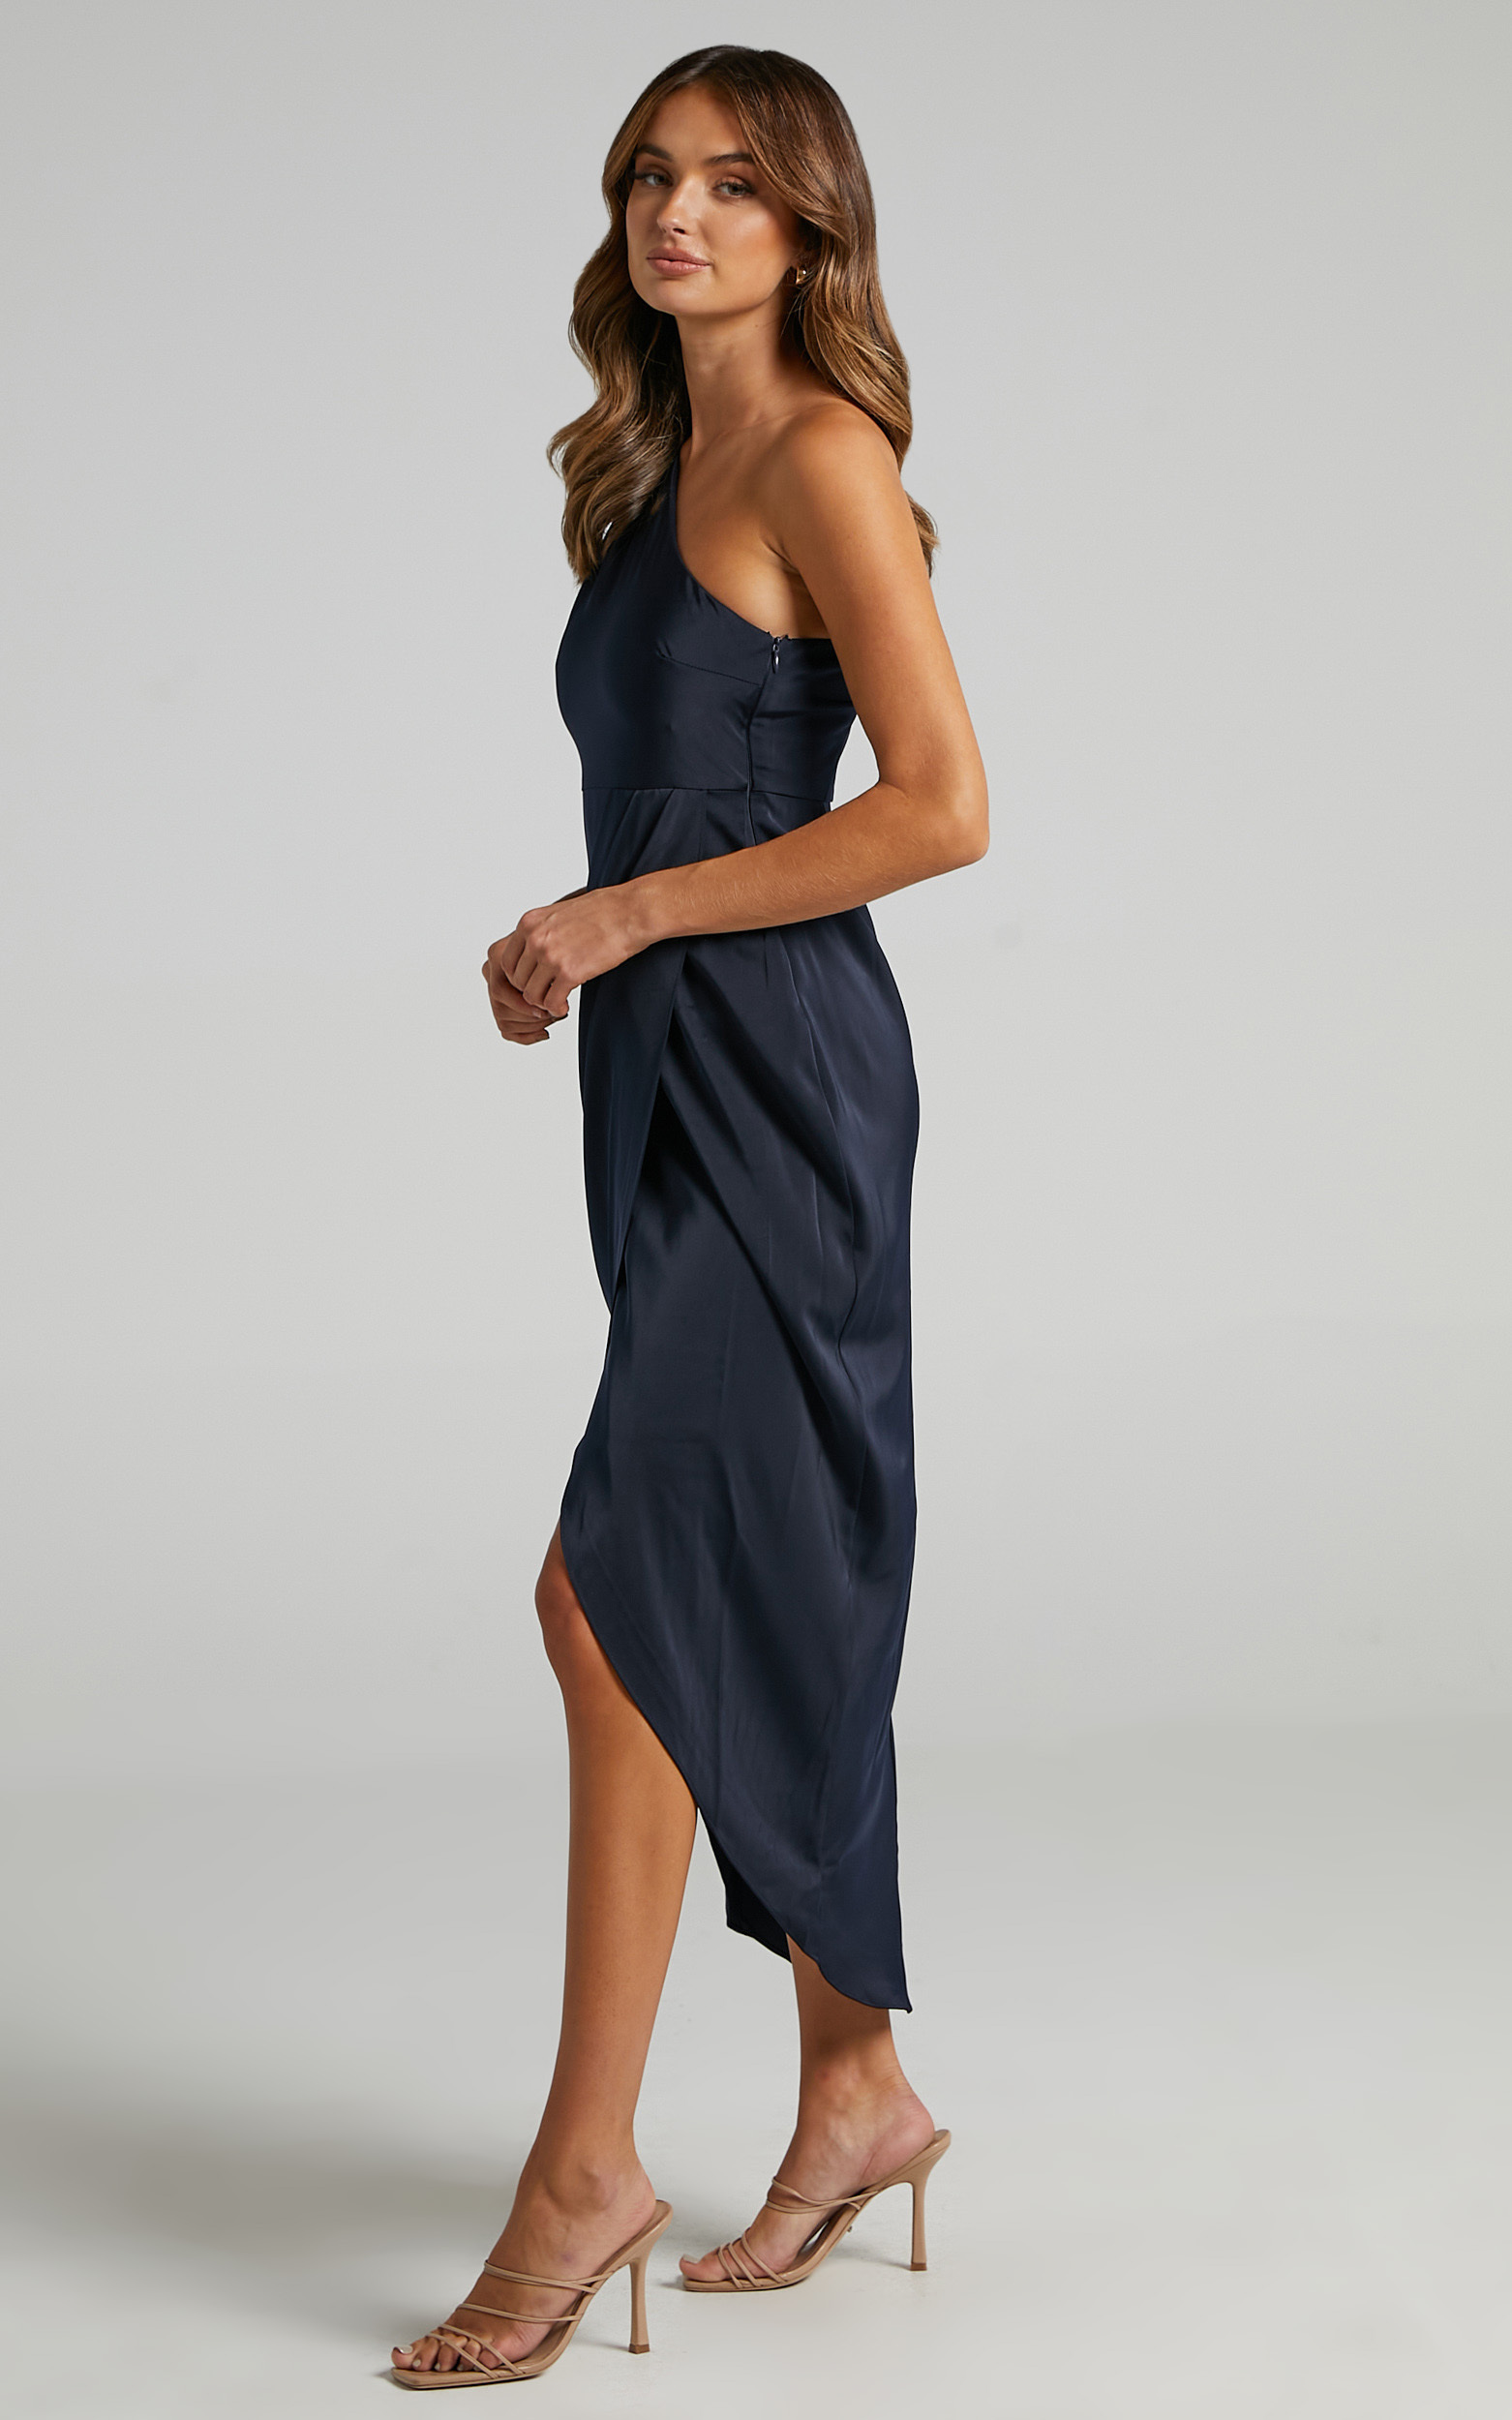 Felt So Happy Dress in Navy - 20, NVY5, hi-res image number null